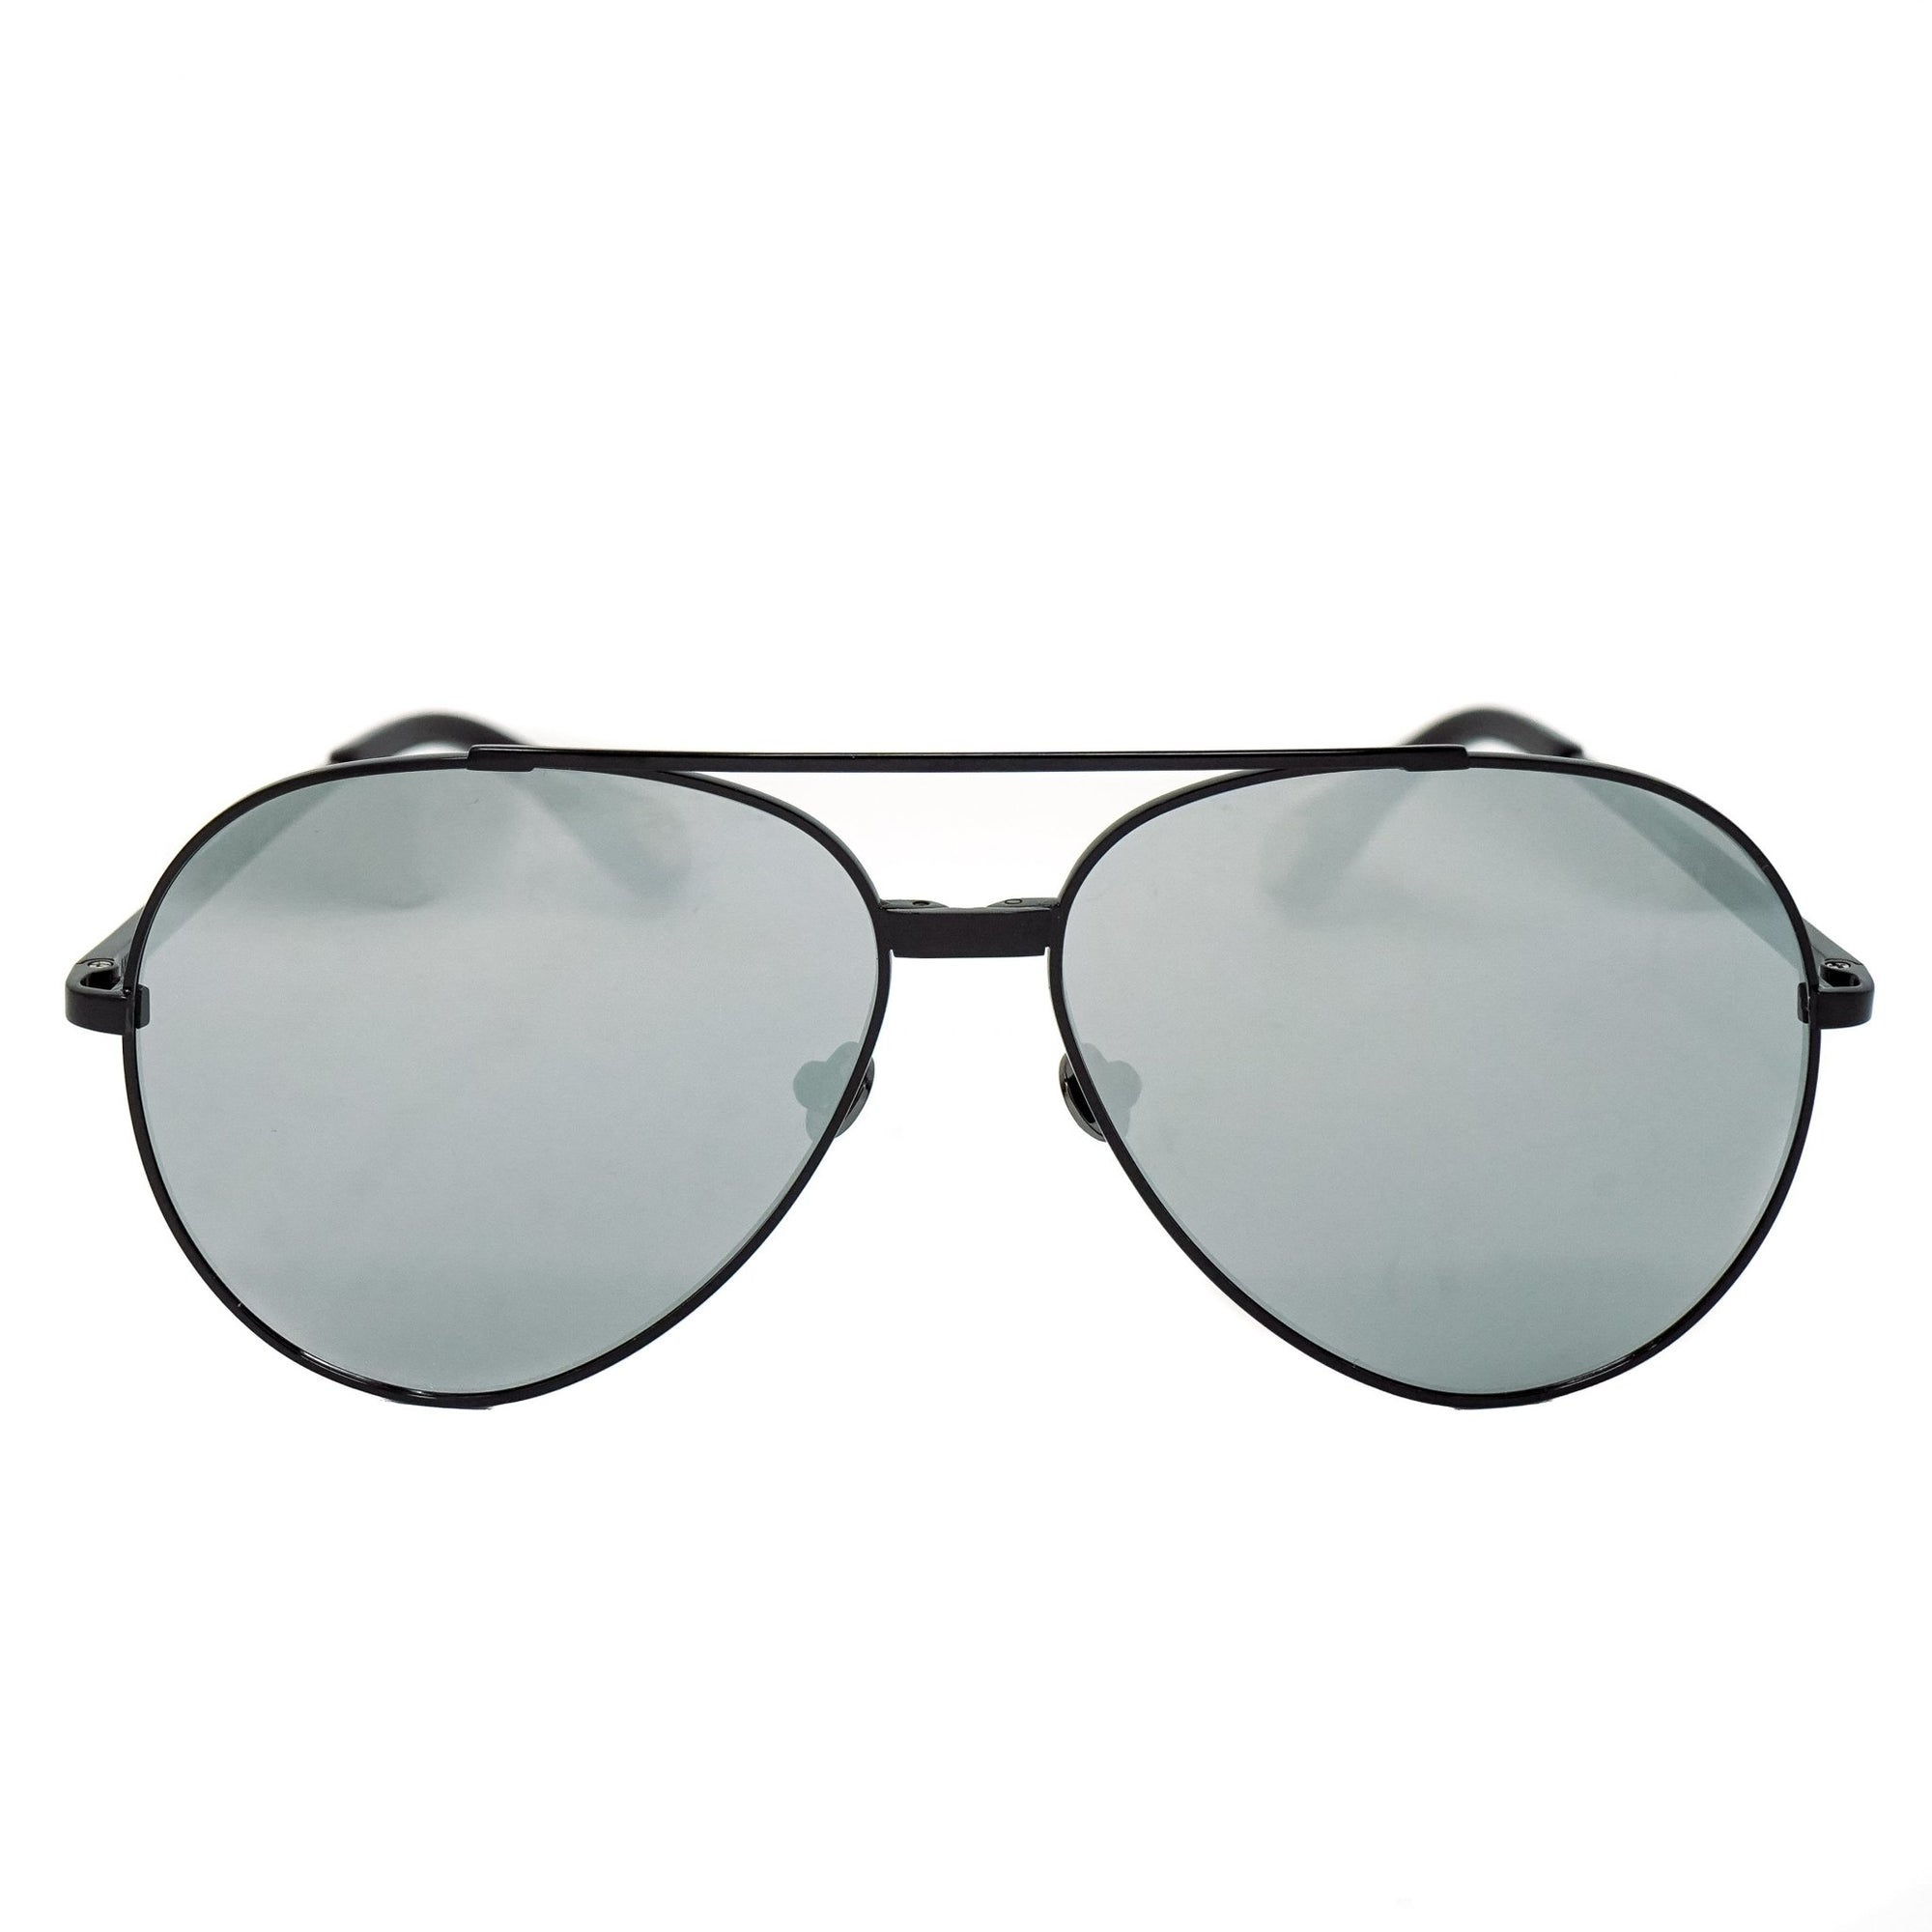 Ann Demeulemeester Sunglasses Black and Grey - Watches & Crystals